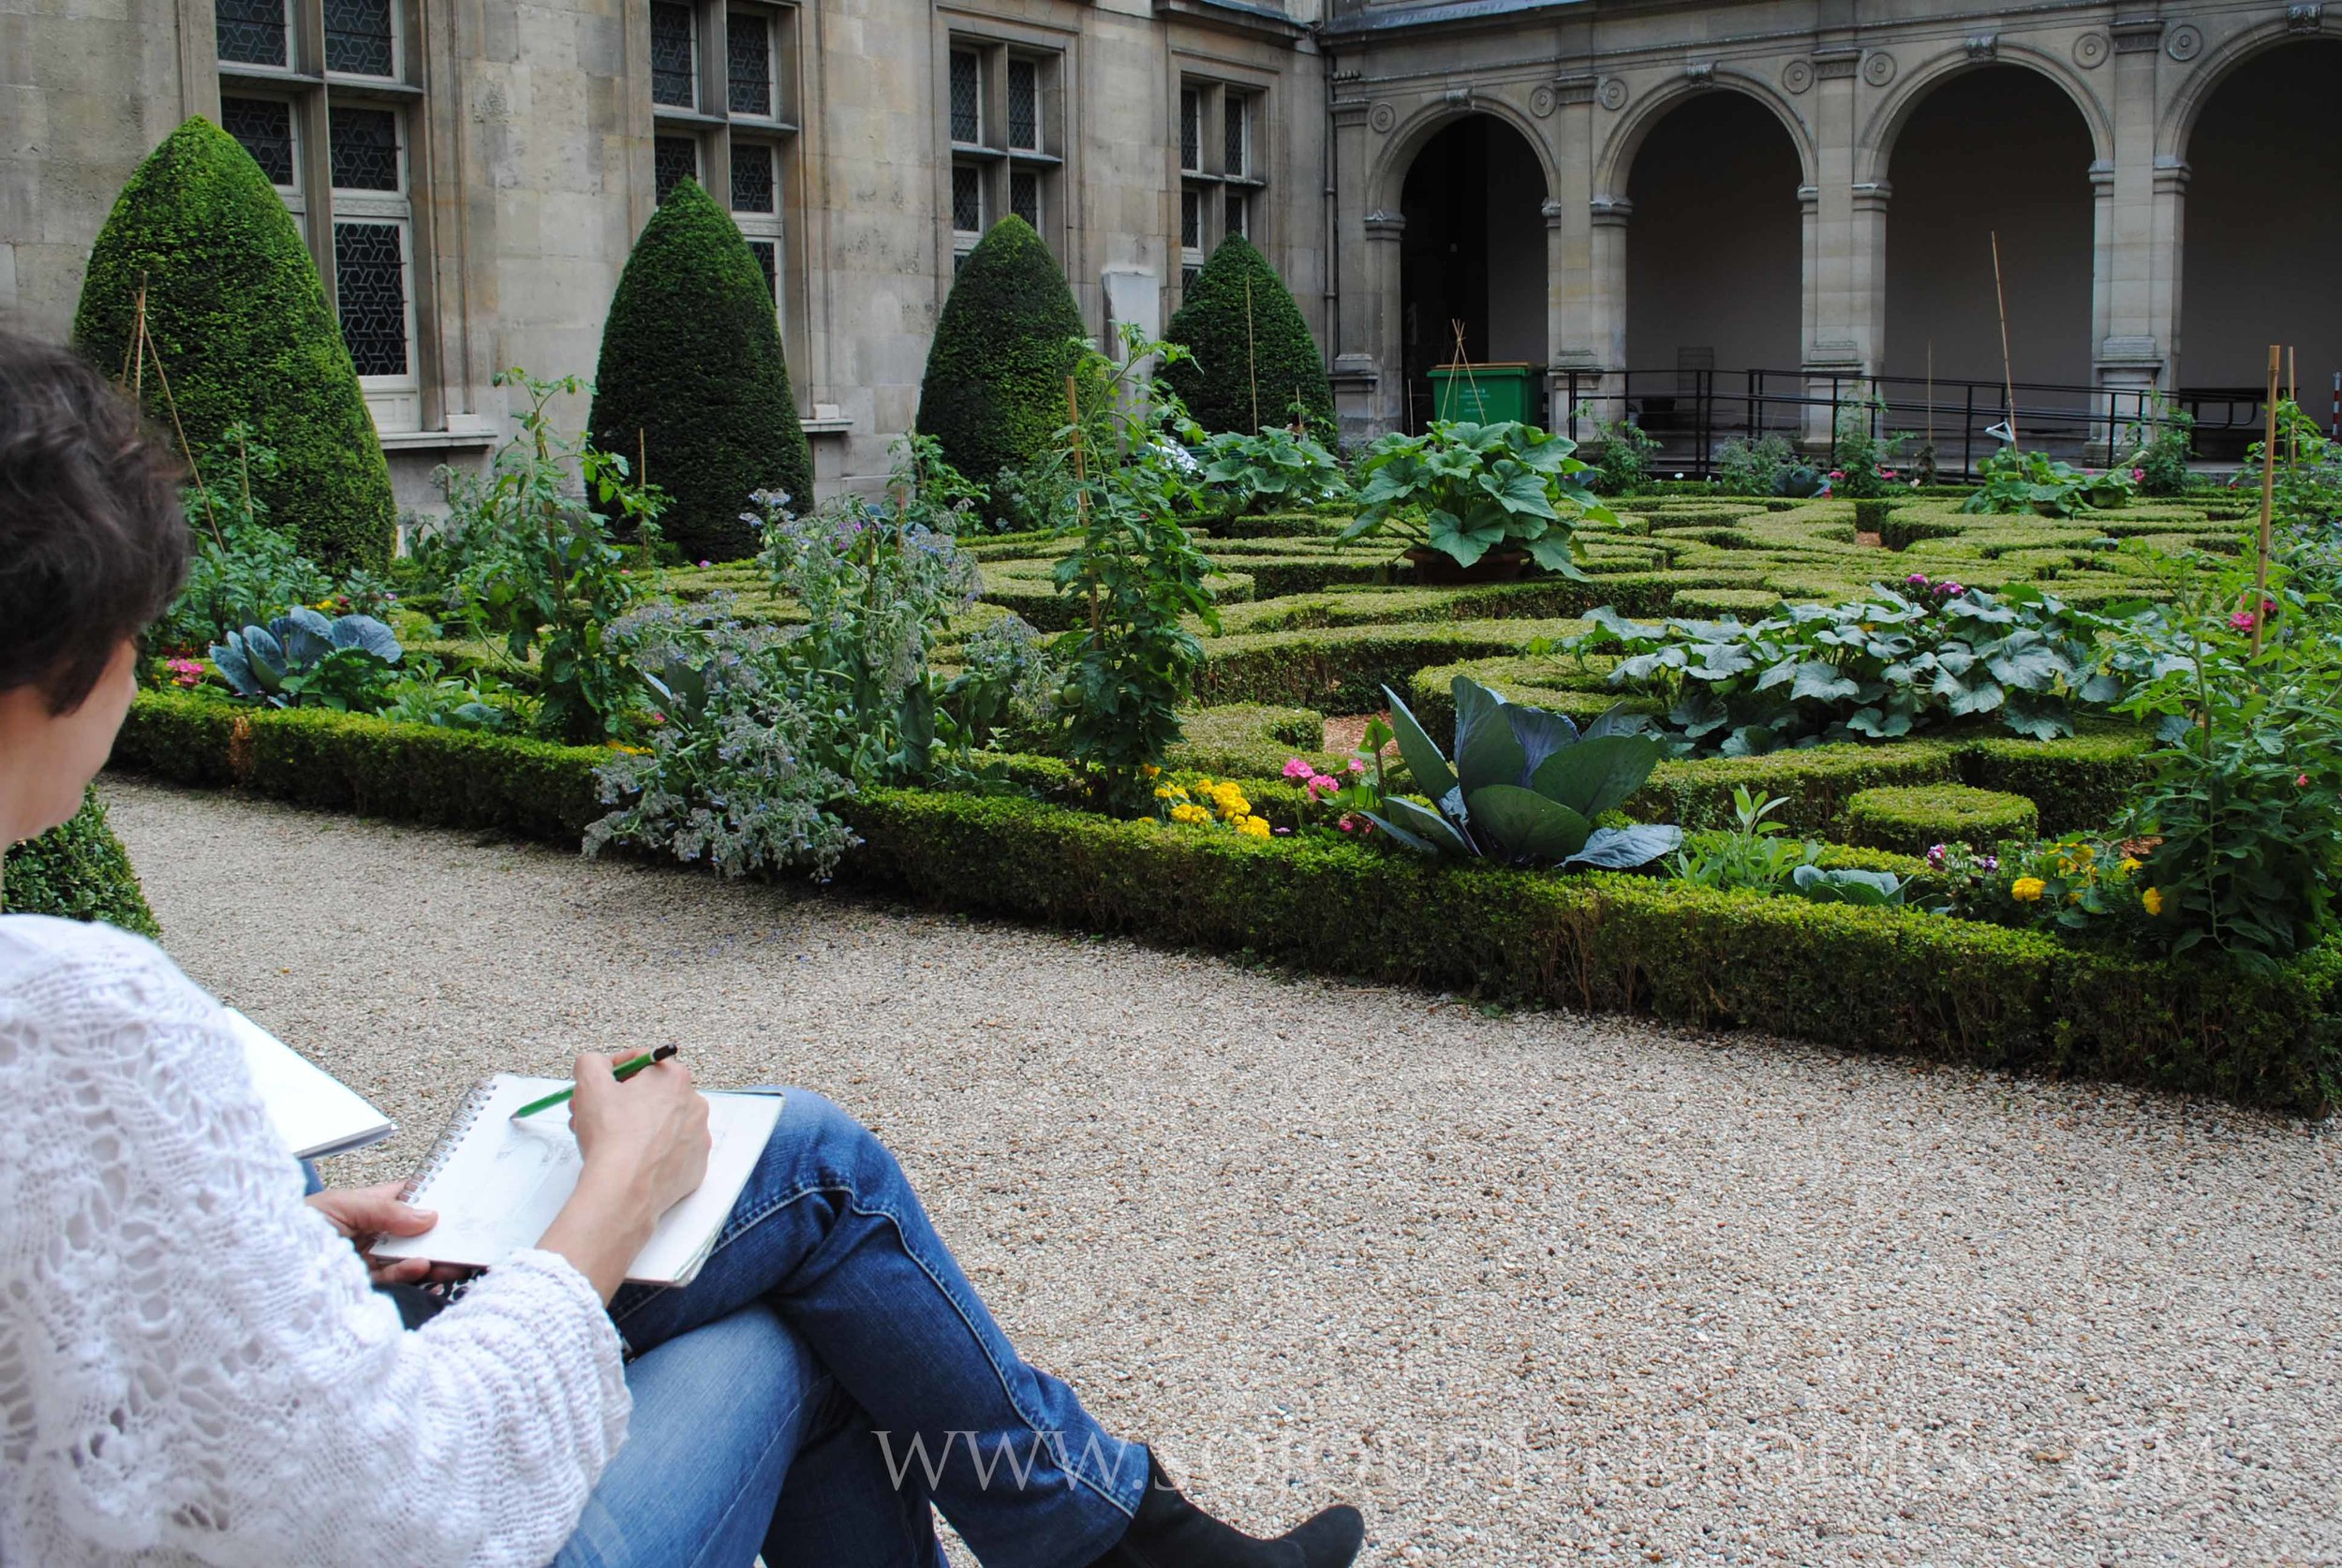 Relaxing in the Garden of a museum housed in an aristocratic mansion